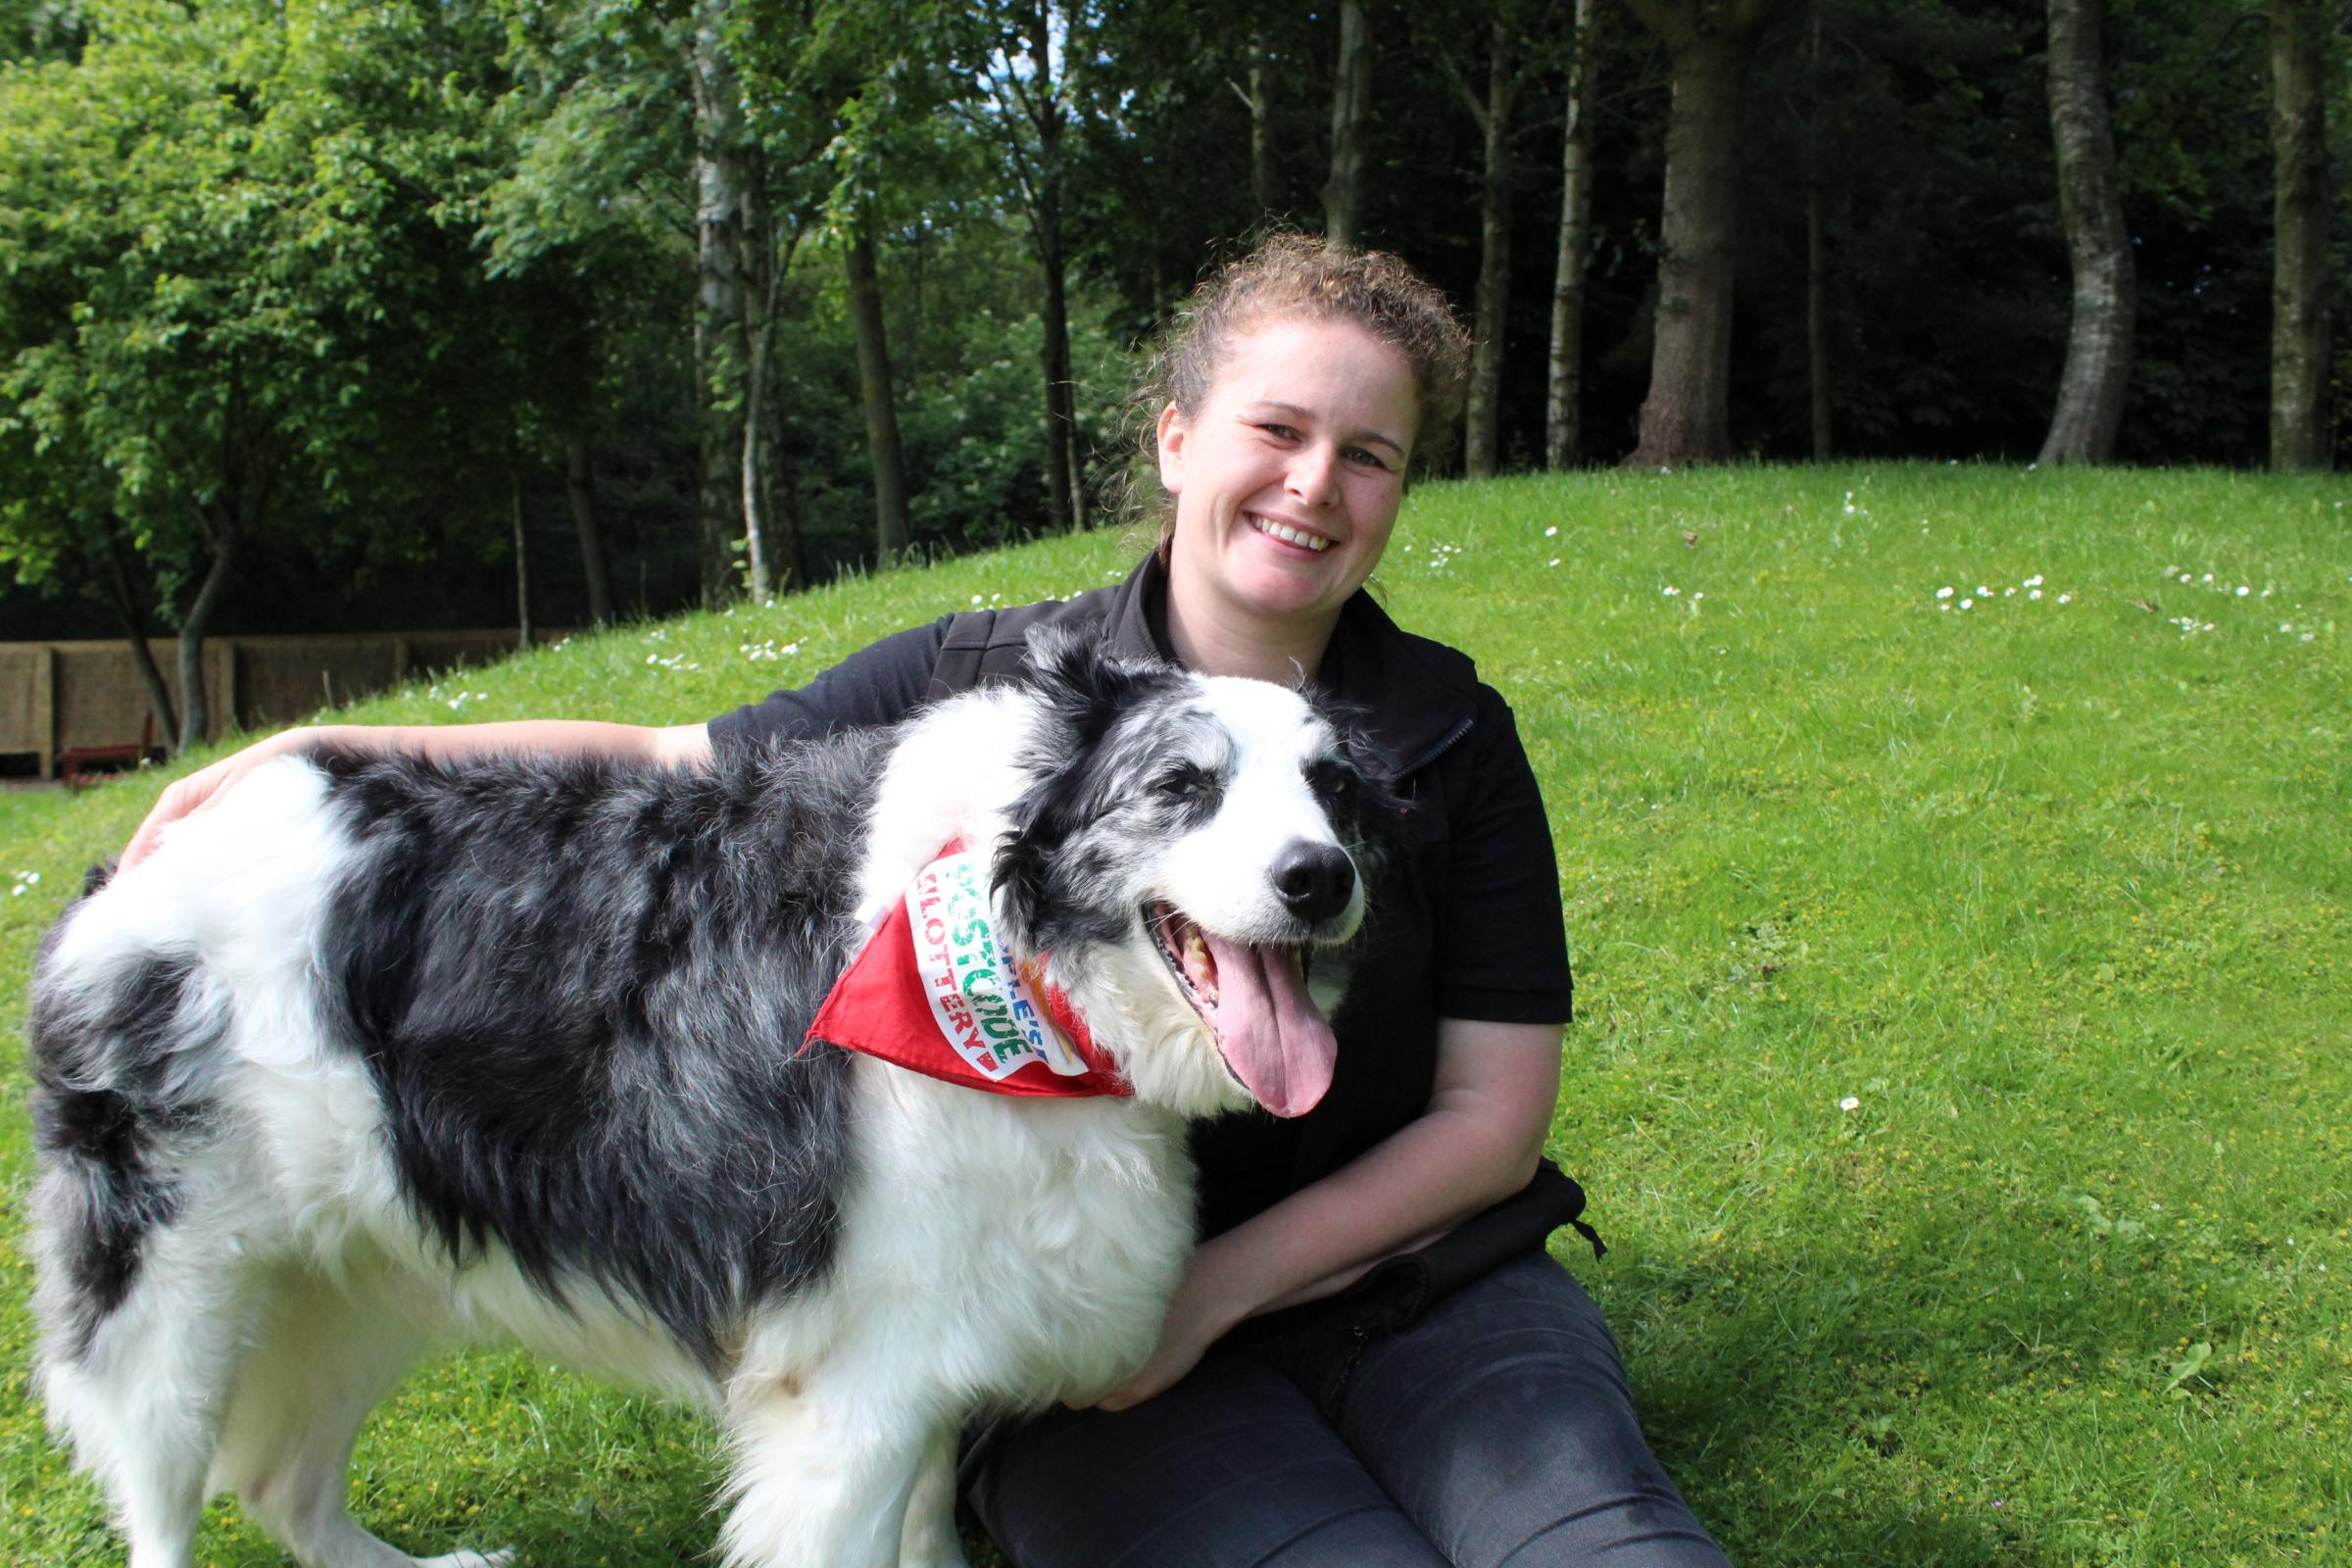 Dog lovers urged to sign up to become foster families